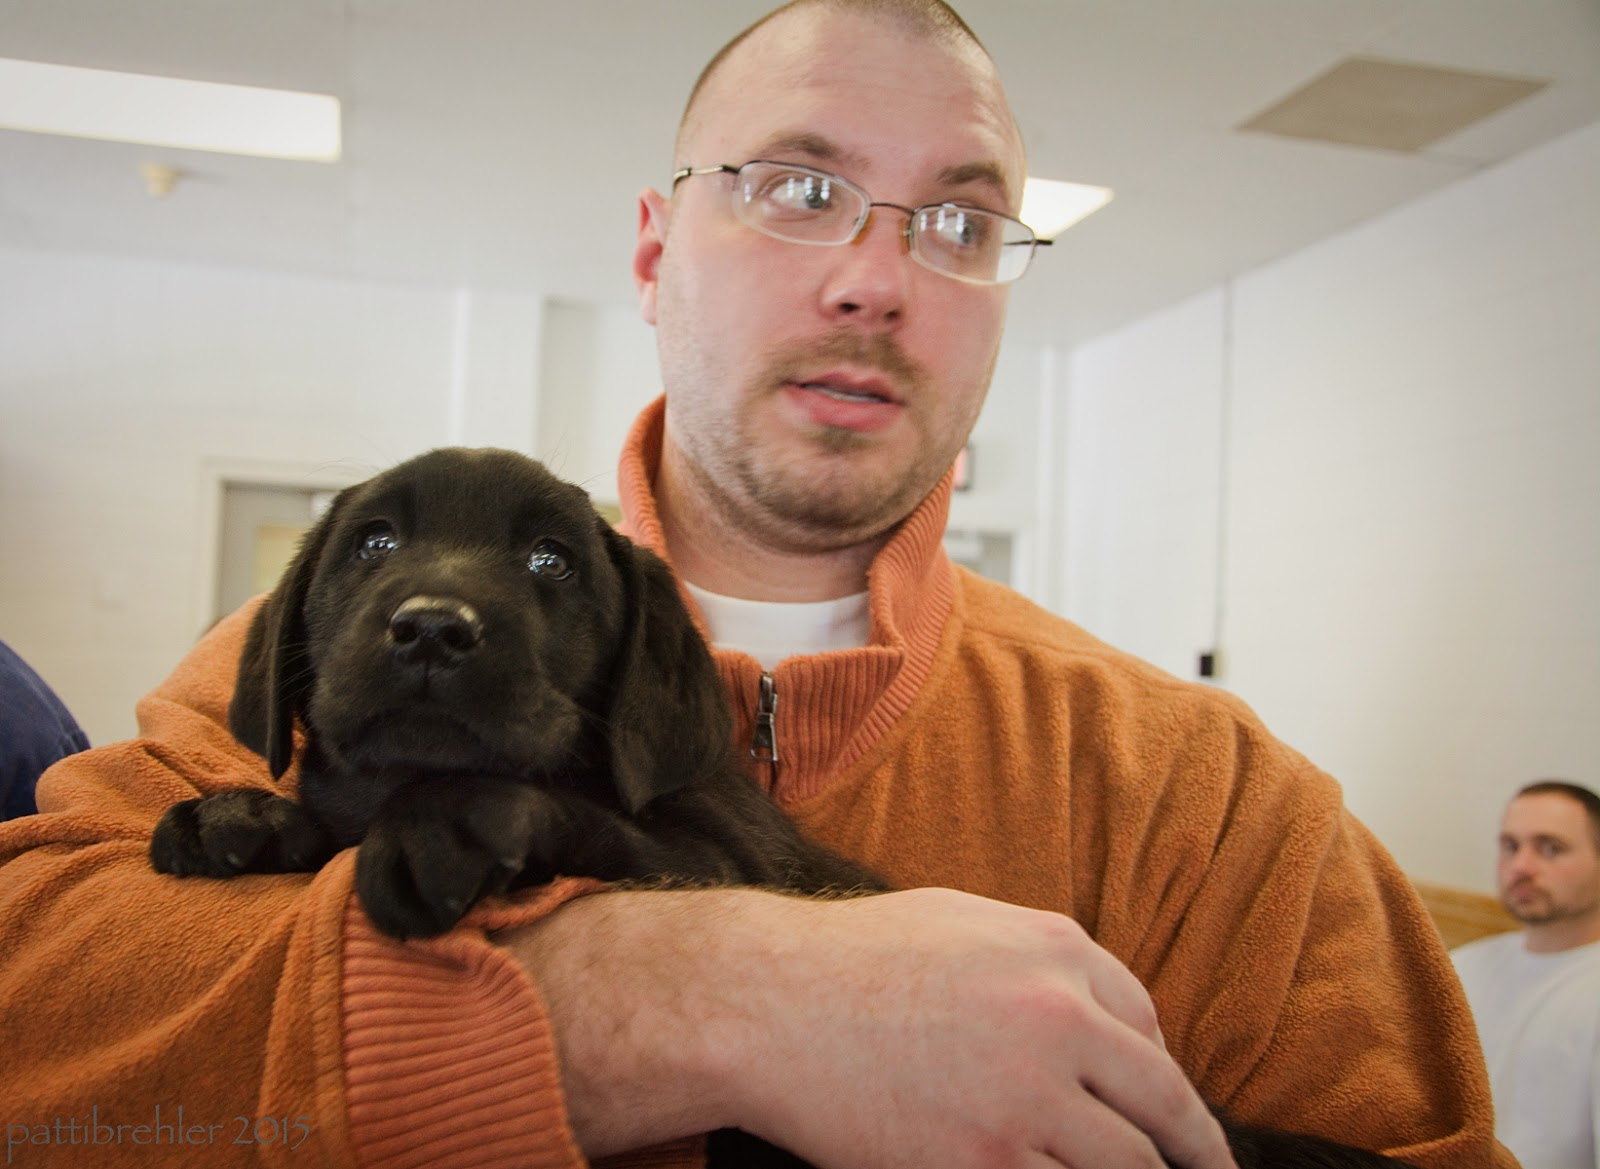 The man dressed in orange is holding the lab puppy with his right arm. The man and the puppy are both wide-eyed, looking toward the camera.